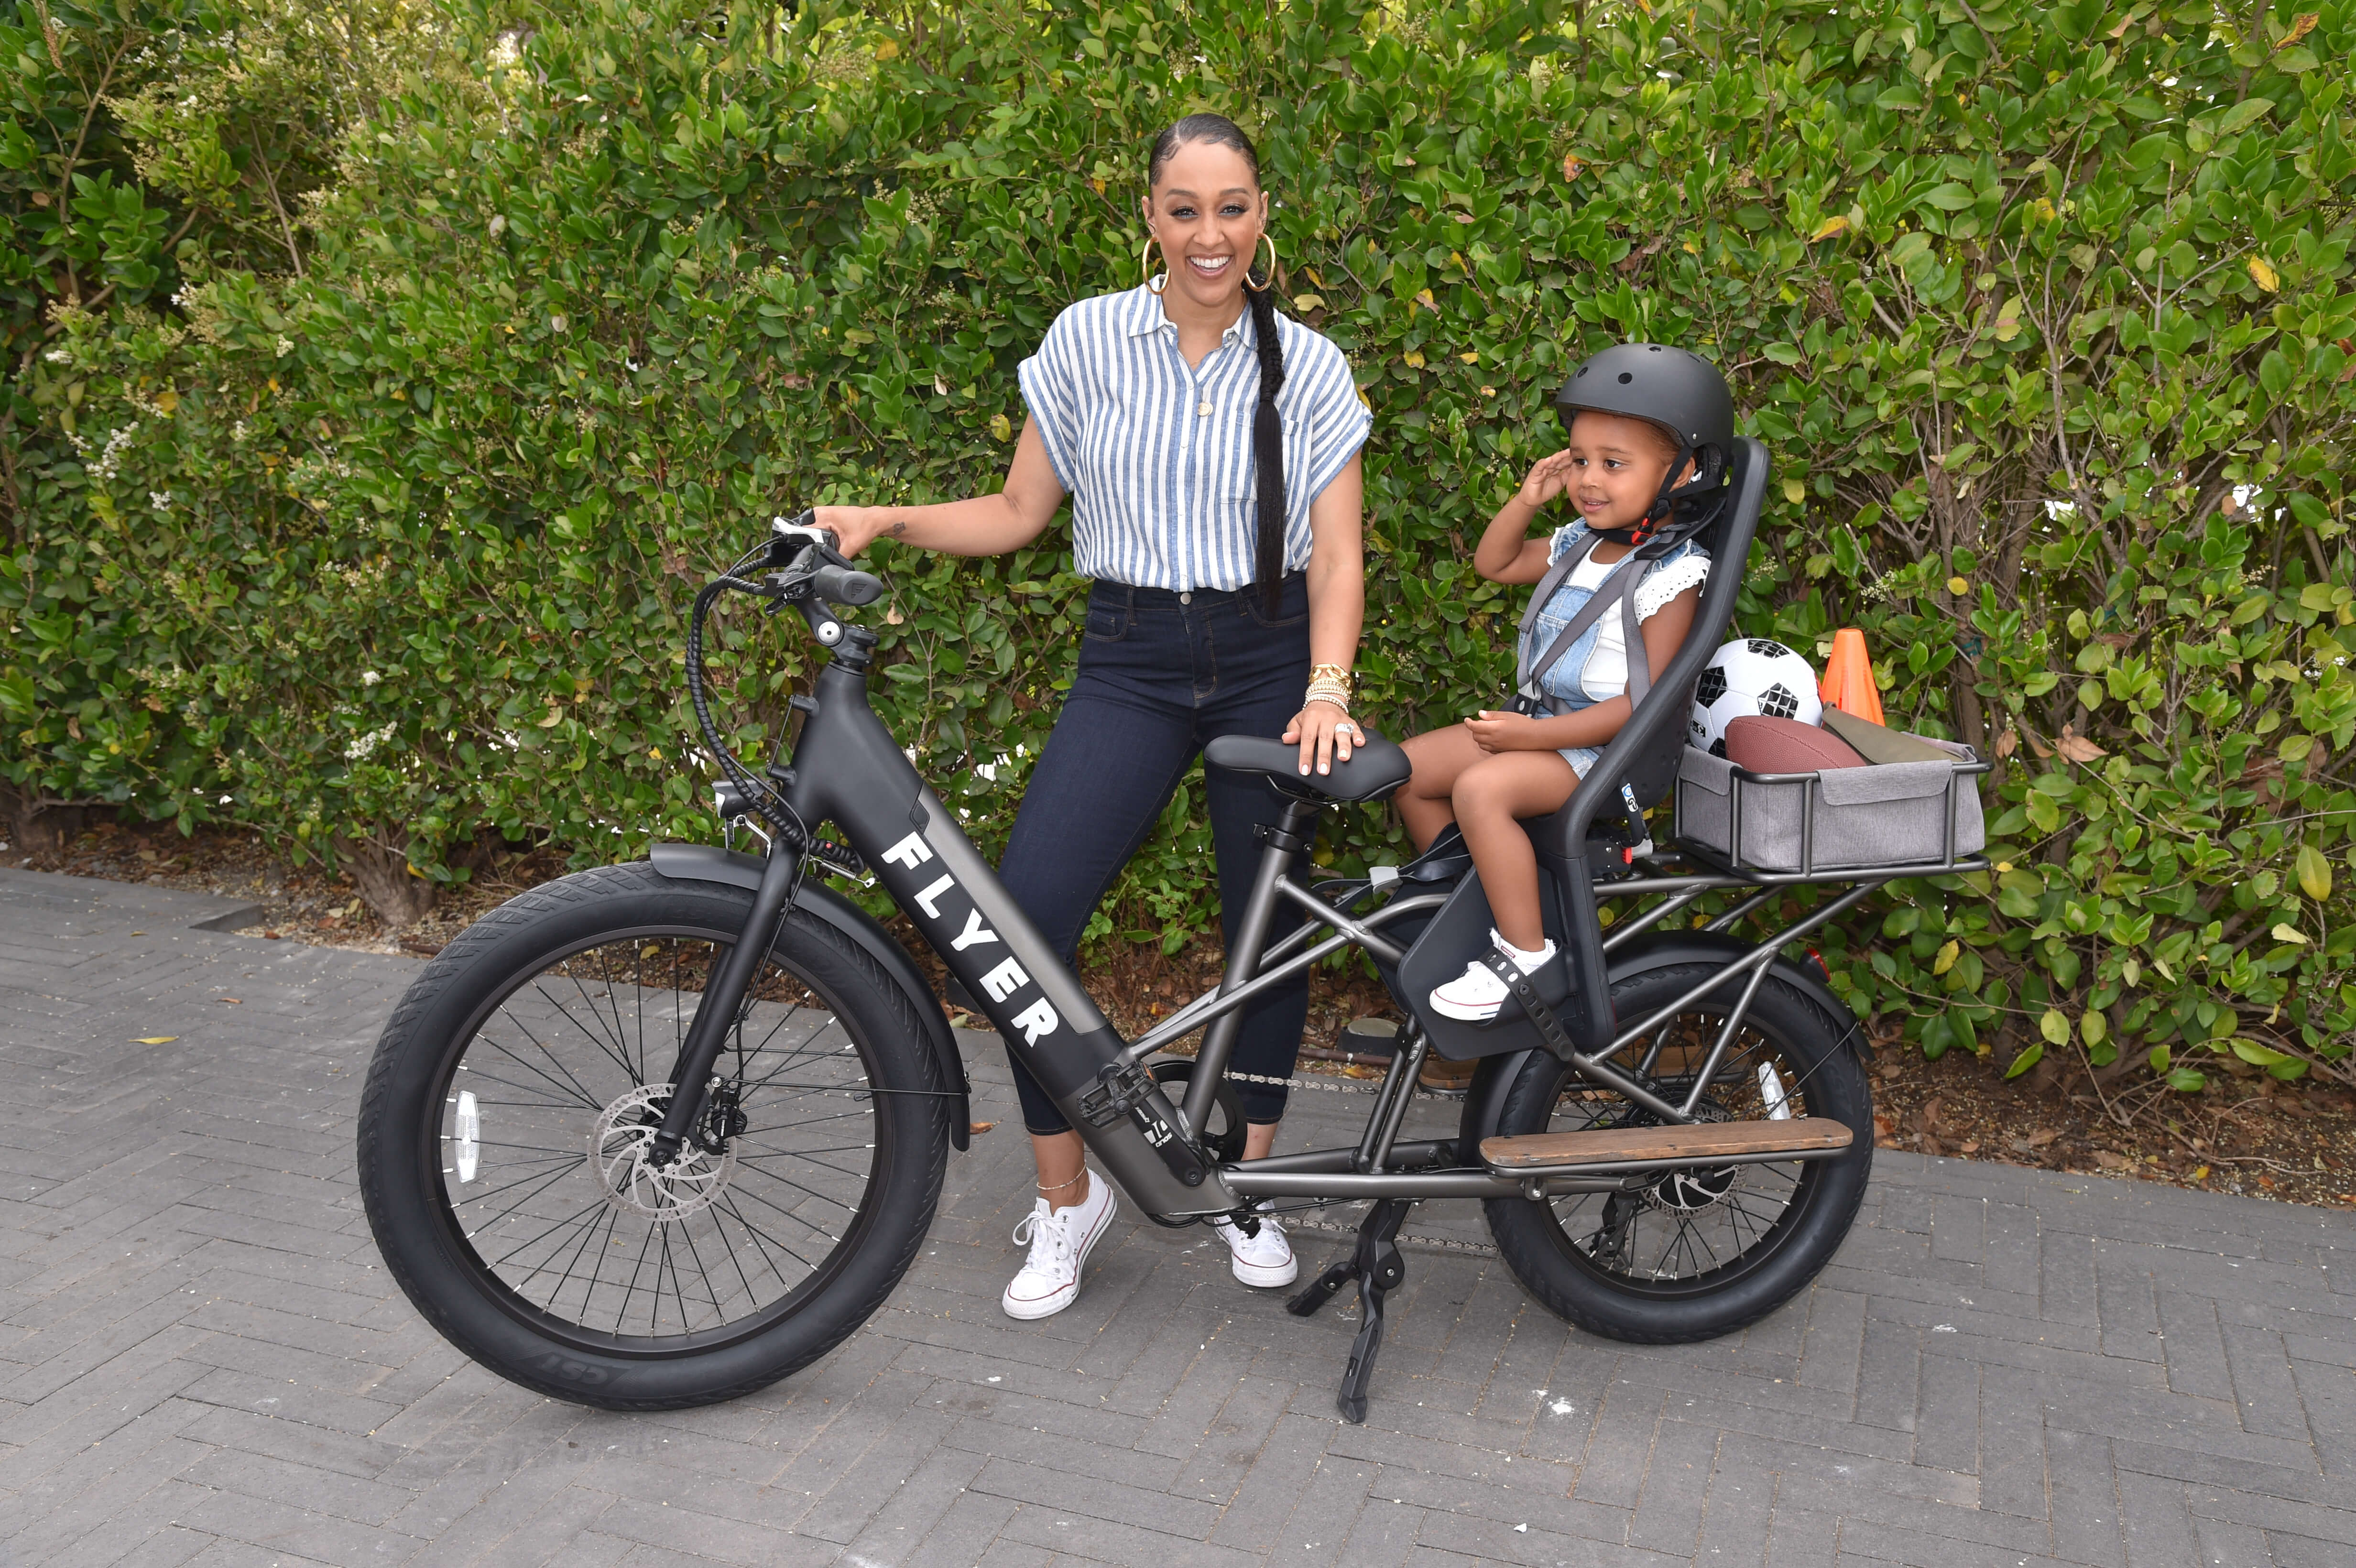 Tia Mowry and daughter posing with Flyer L885 black electric bike